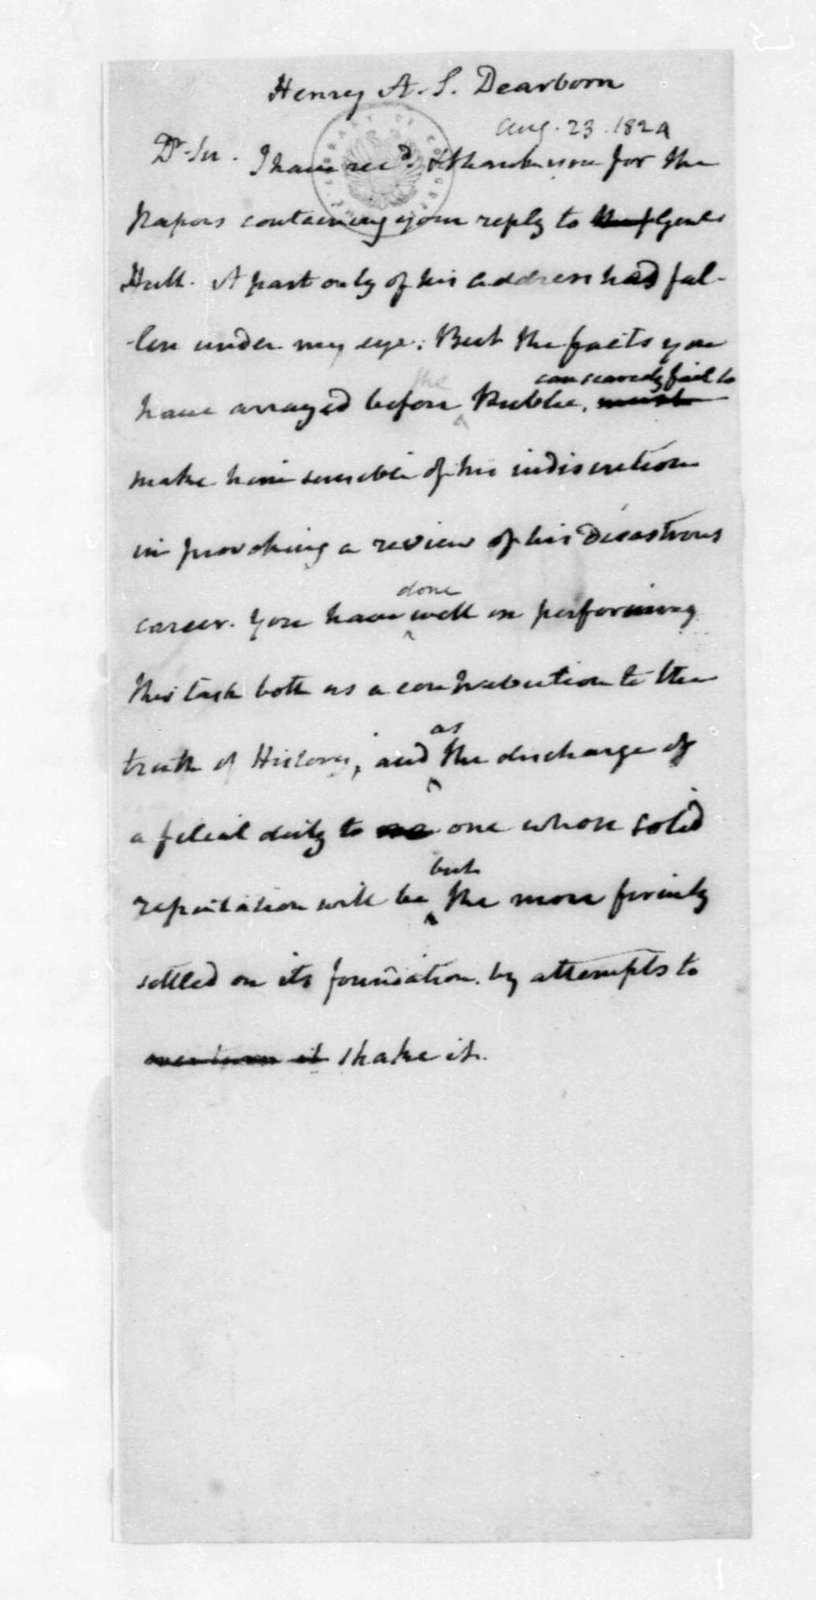 James Madison to Henry A. S. Dearborn, August 23, 1824.